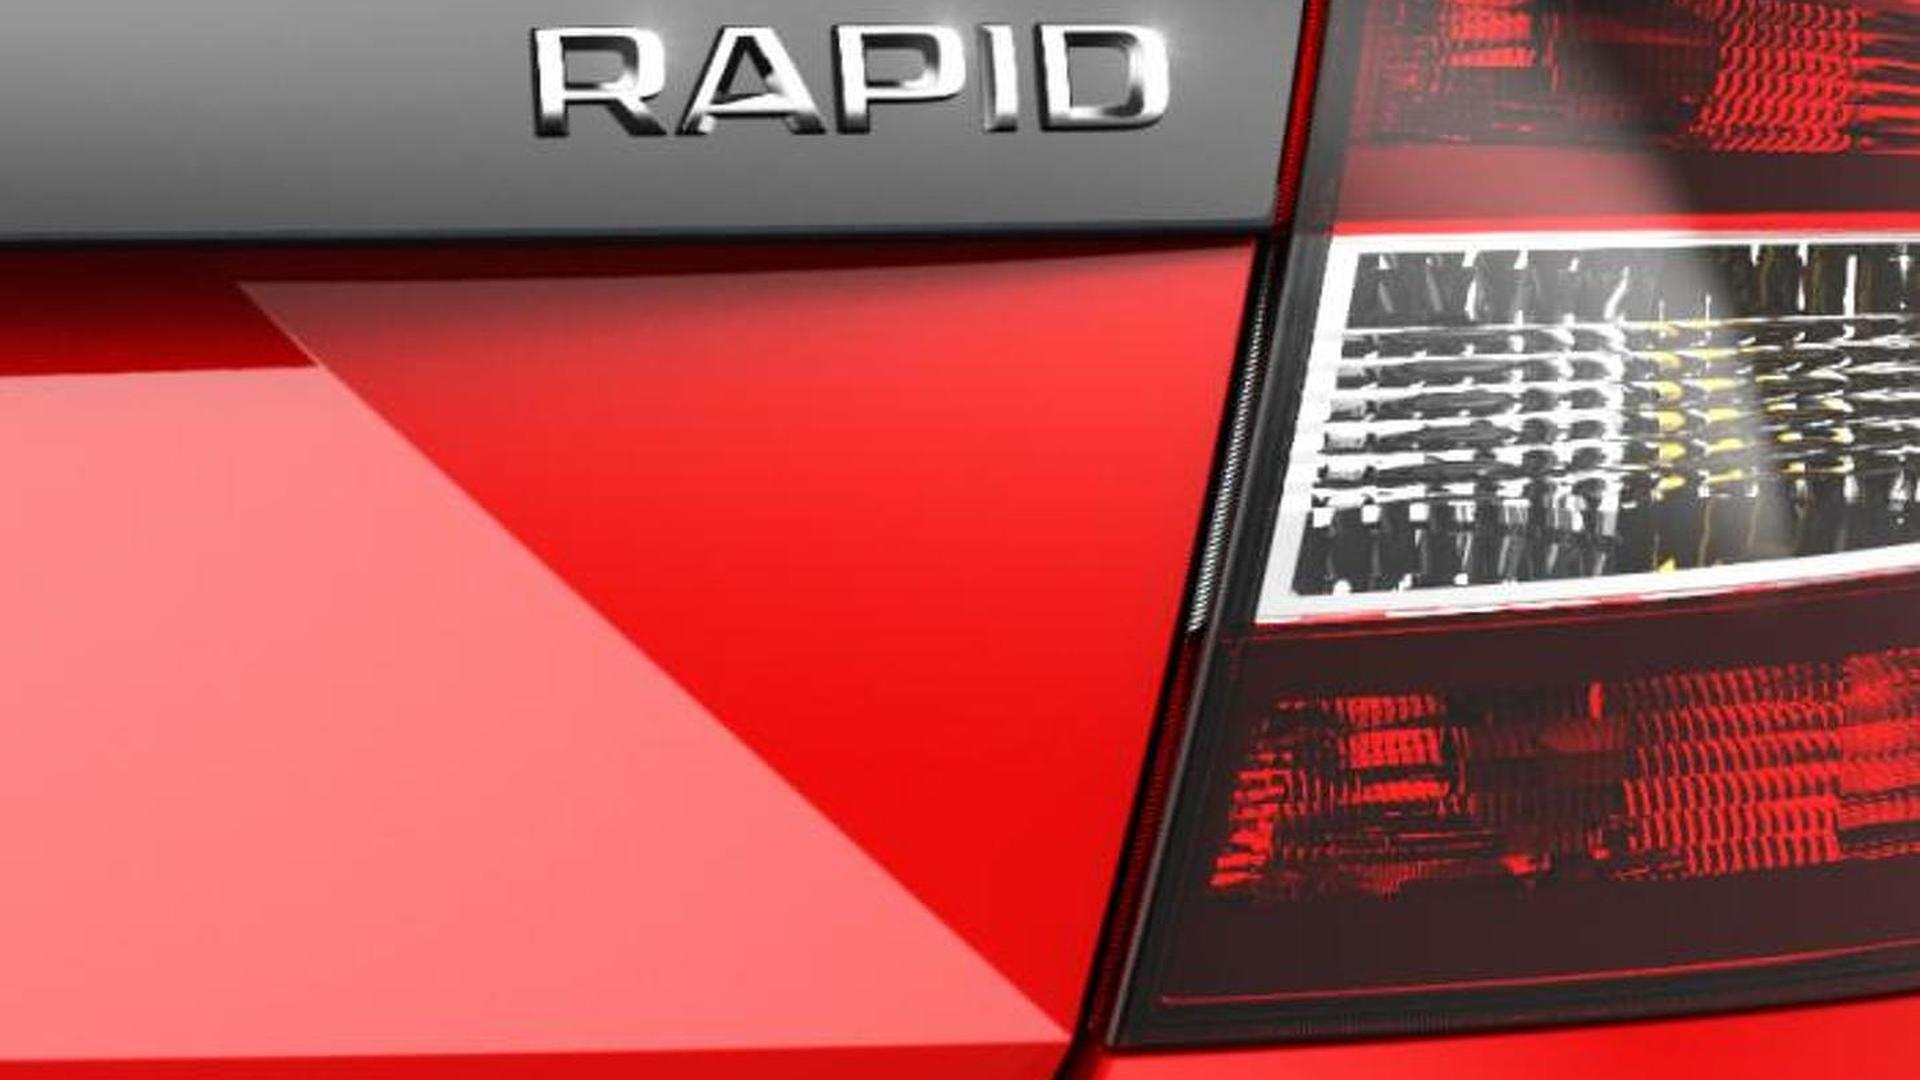 Skoda teases a new Rapid variant, could be a high-performance RS